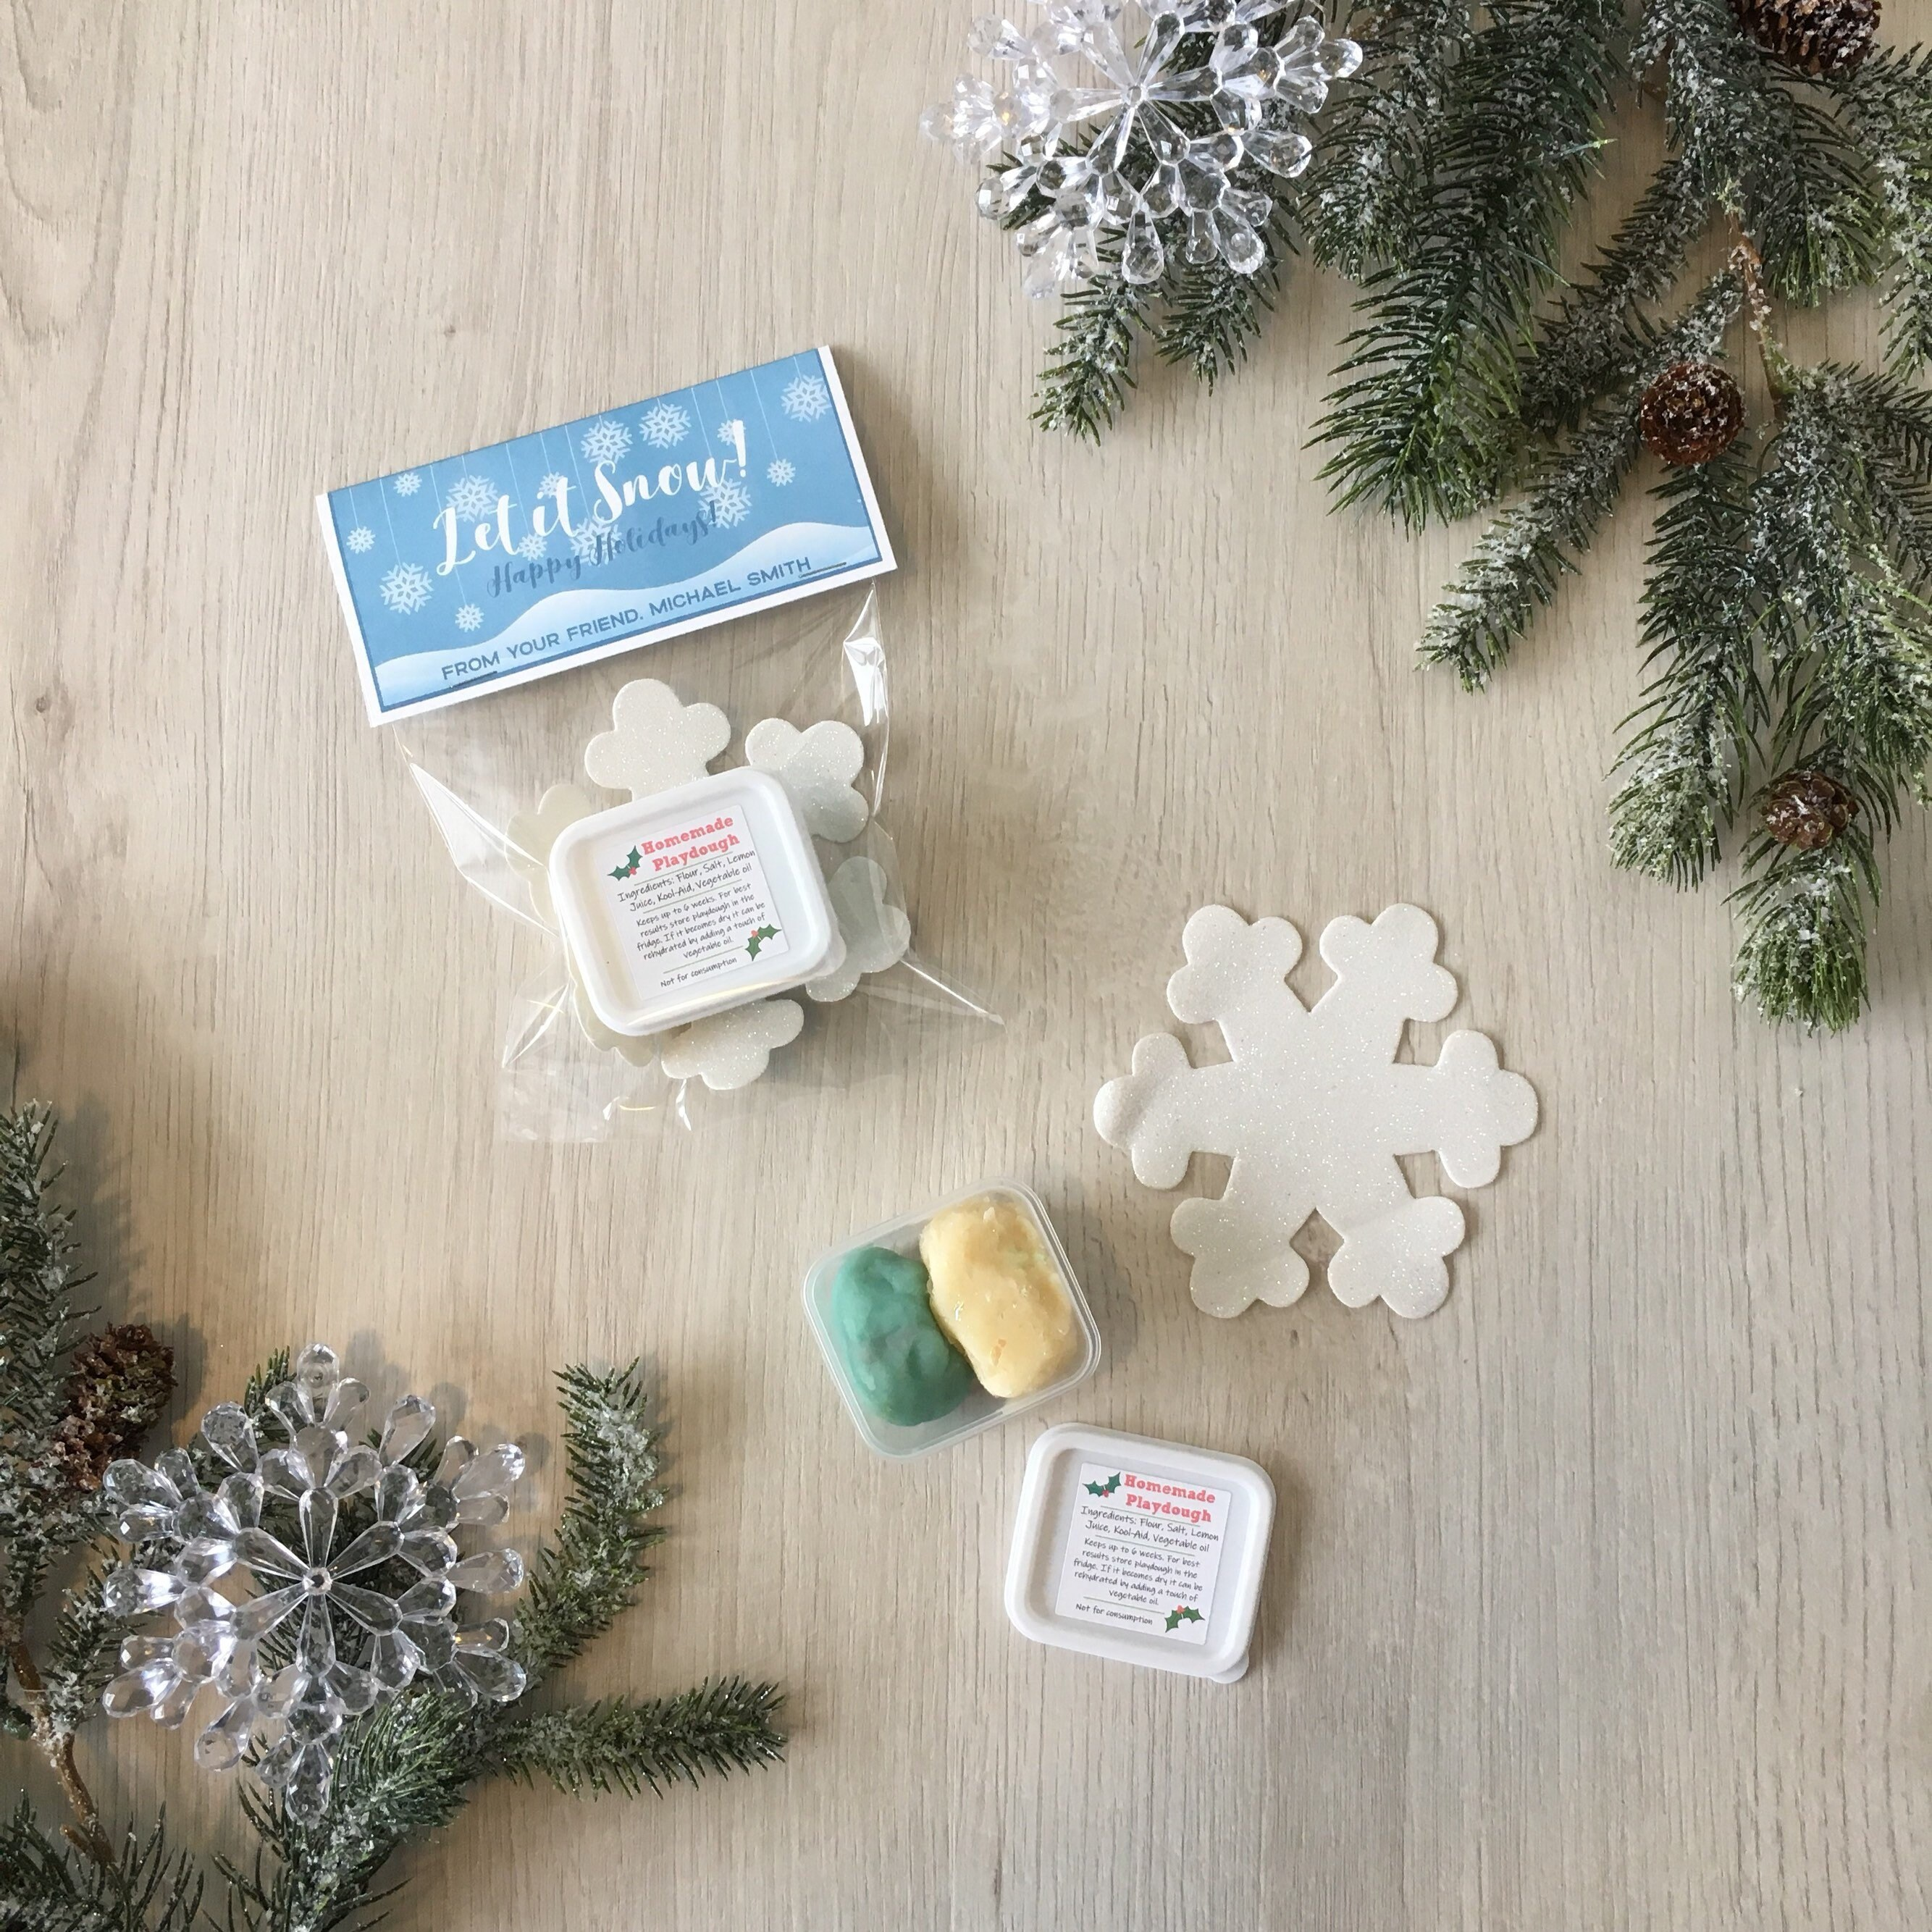 Holiday Snowflake Play Dough activity kit! - with snowflake shape ...